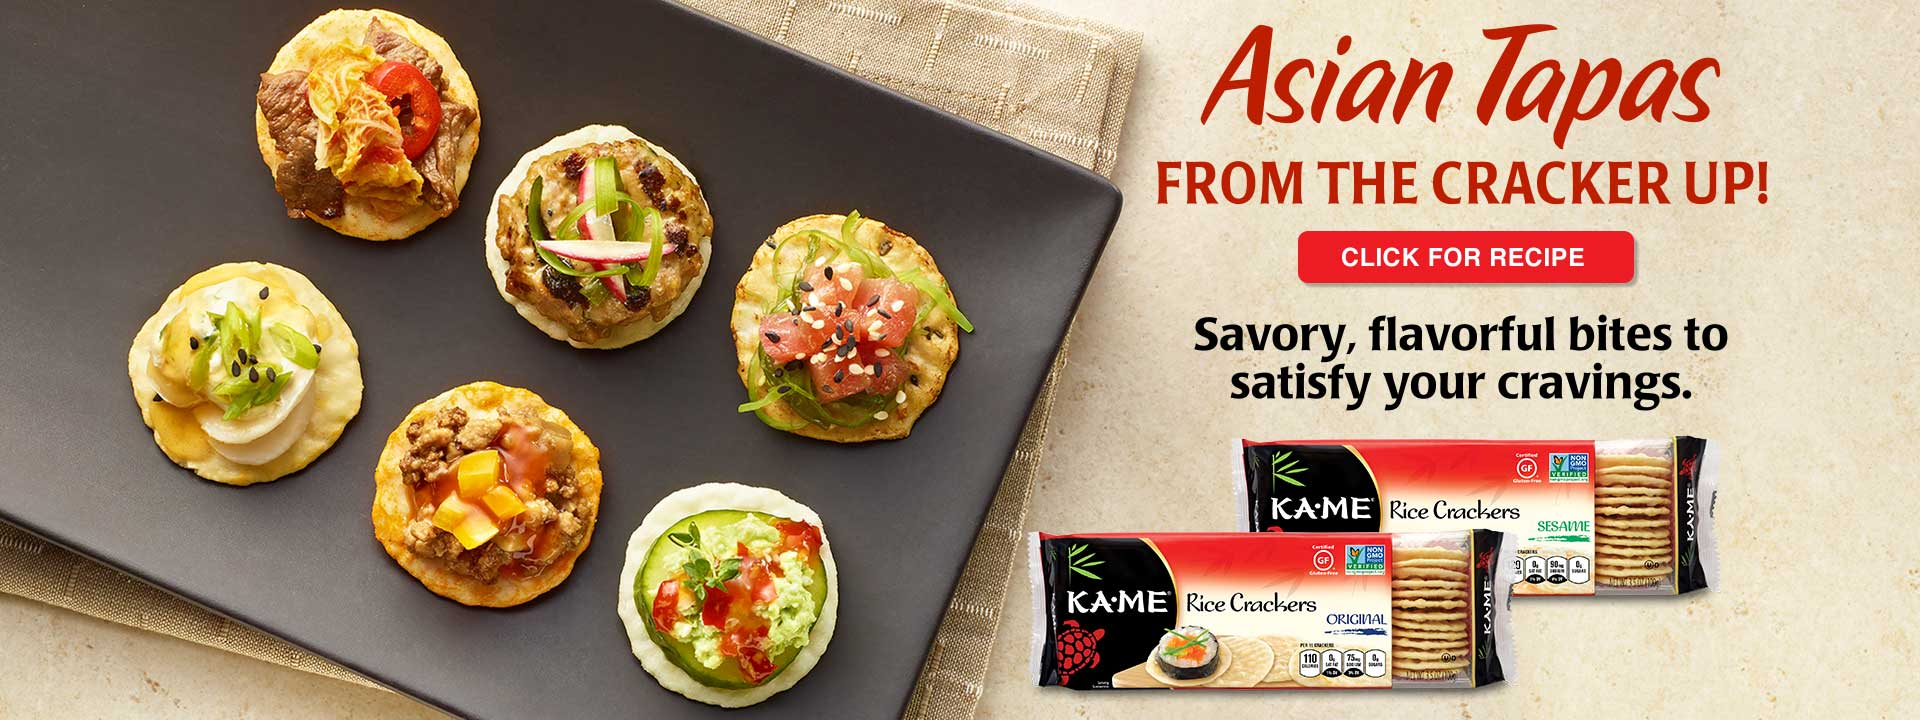 asian tapas kame rice crackers